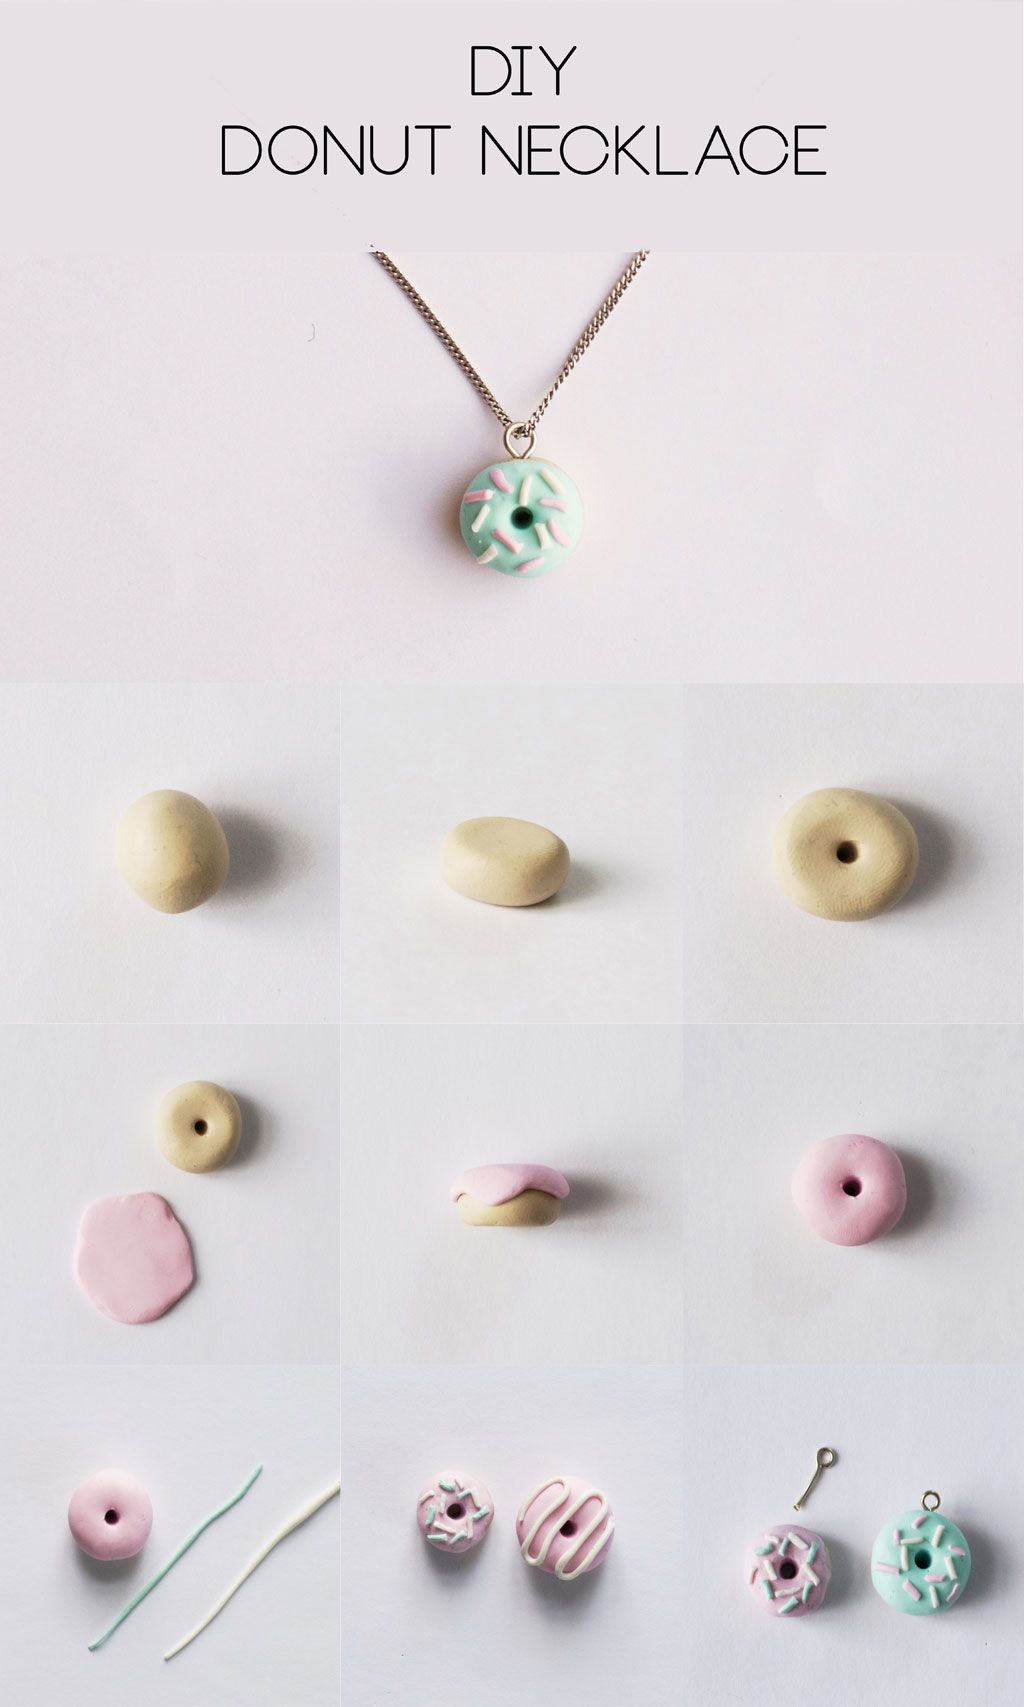 DIY Polymer Clay Donut Necklace Step-by-Step Tutorial